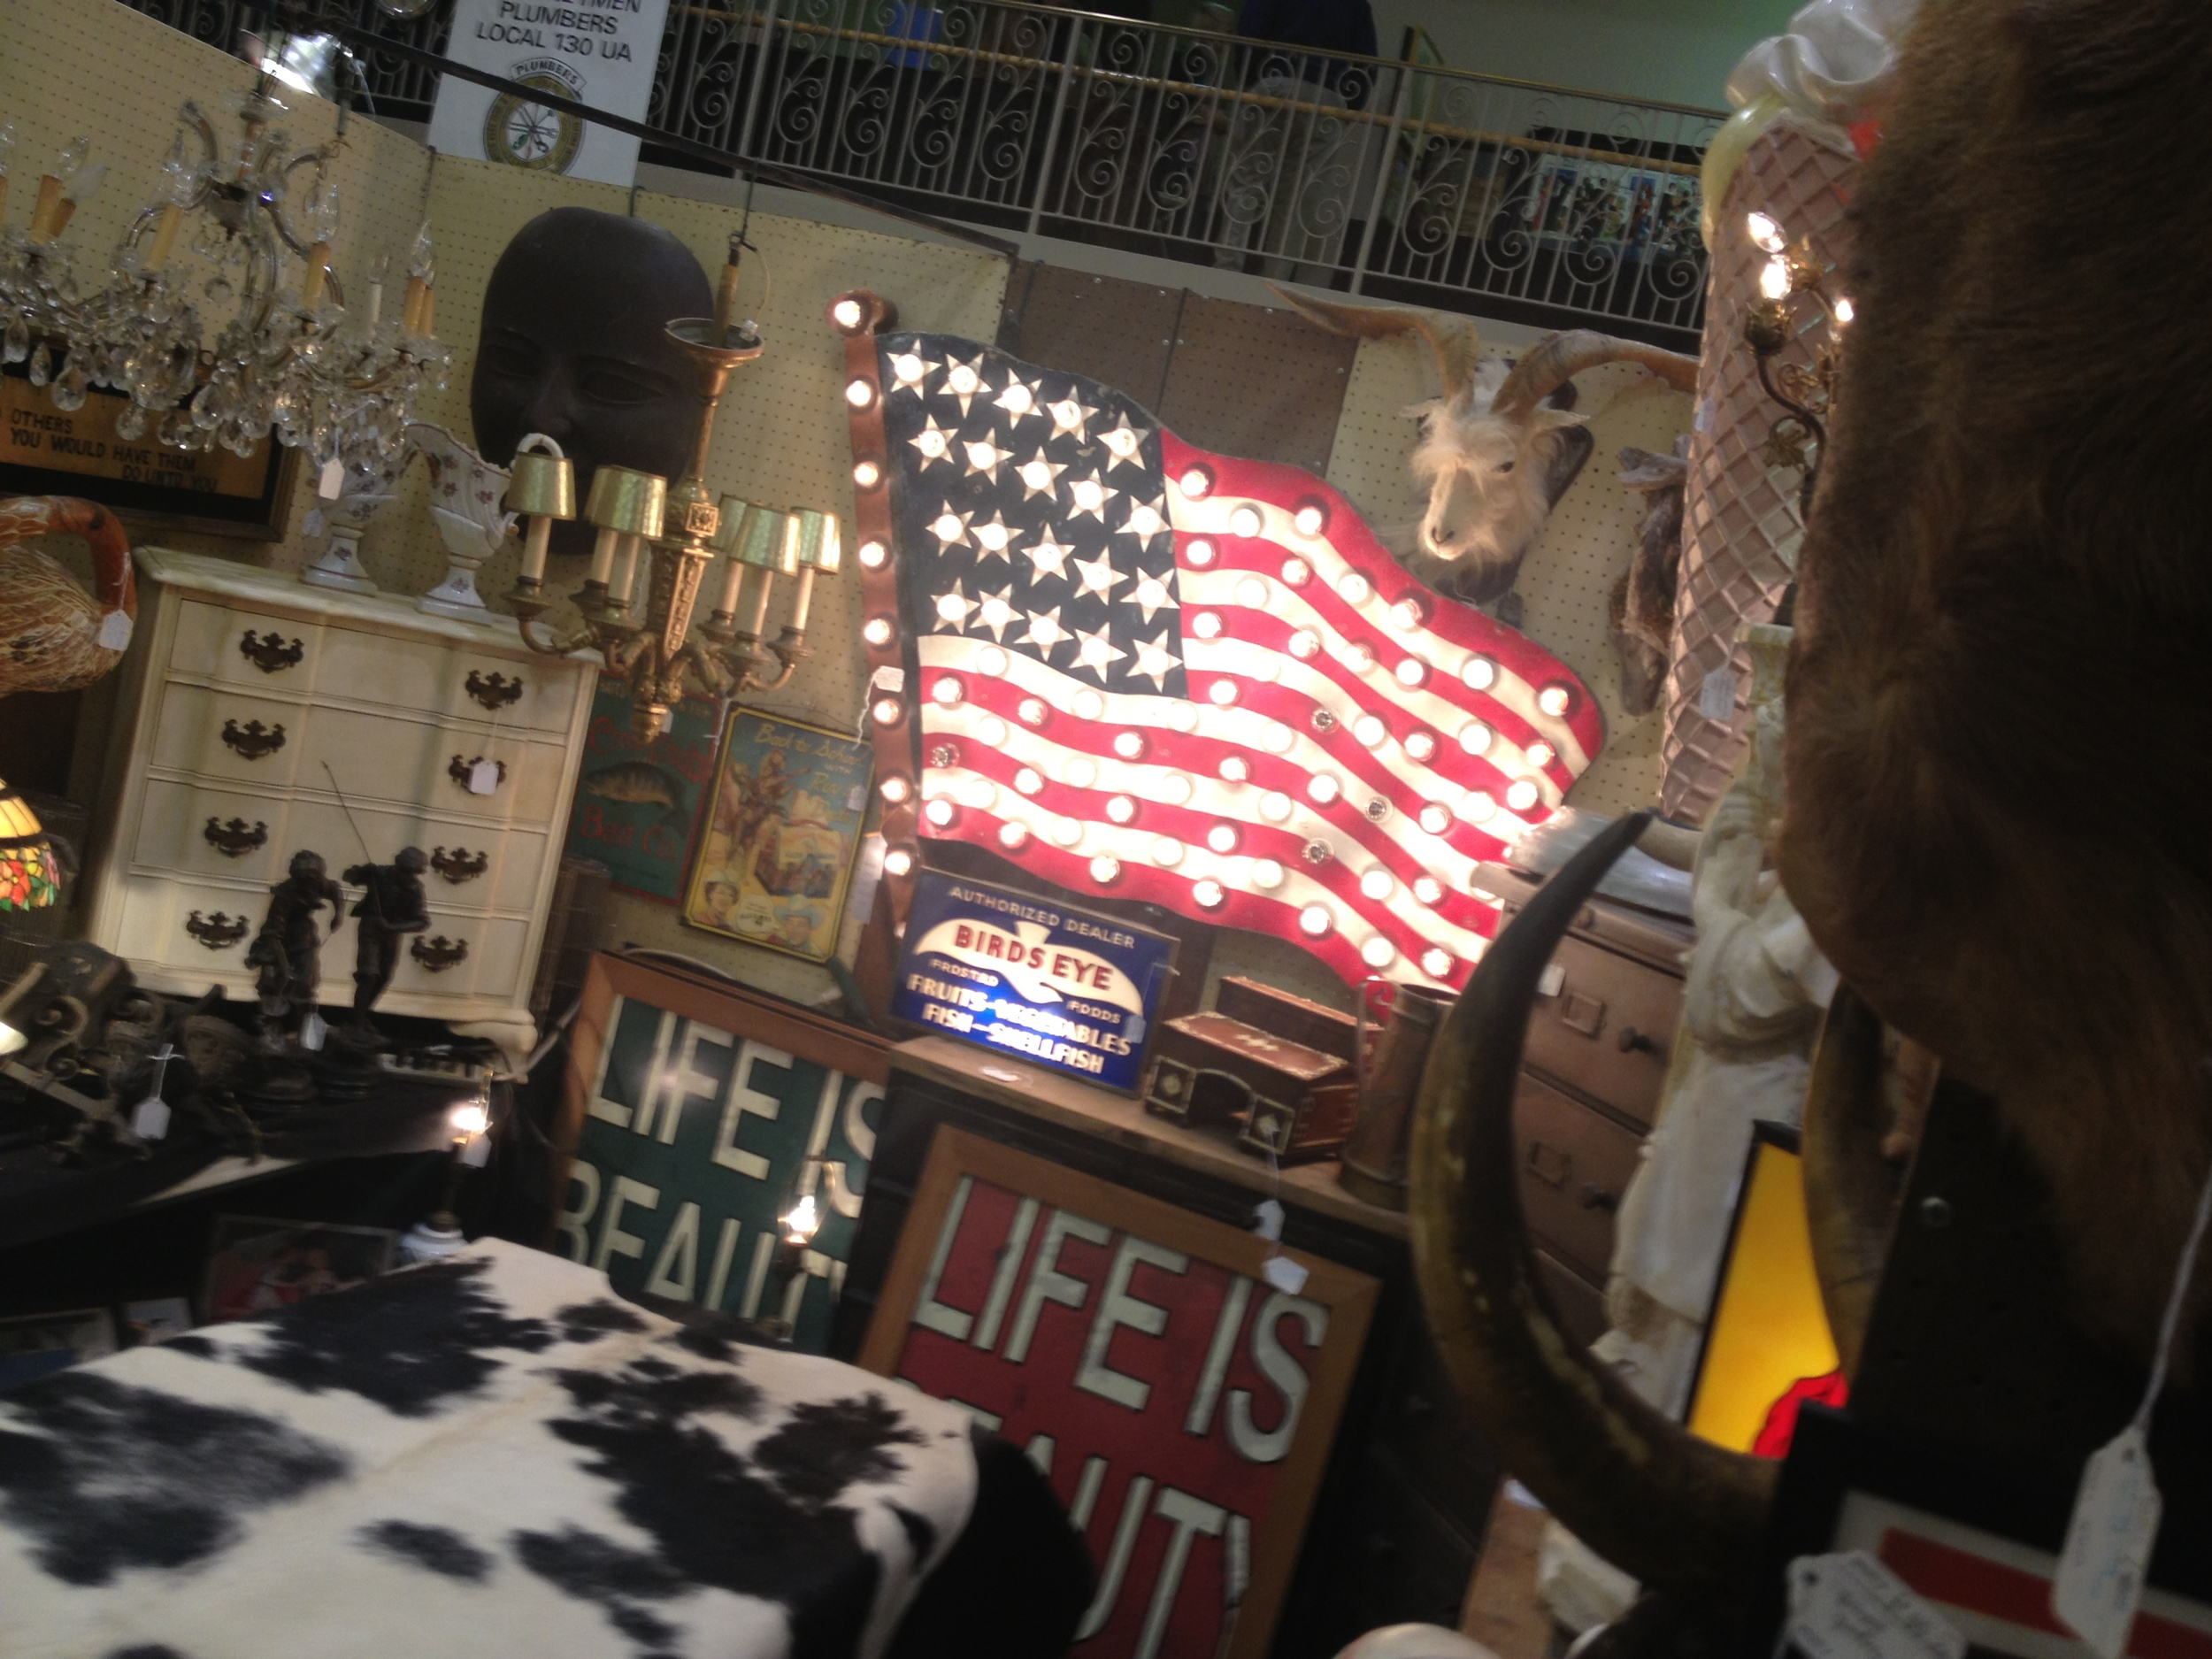 Vintage taxidermy and light up American flag!